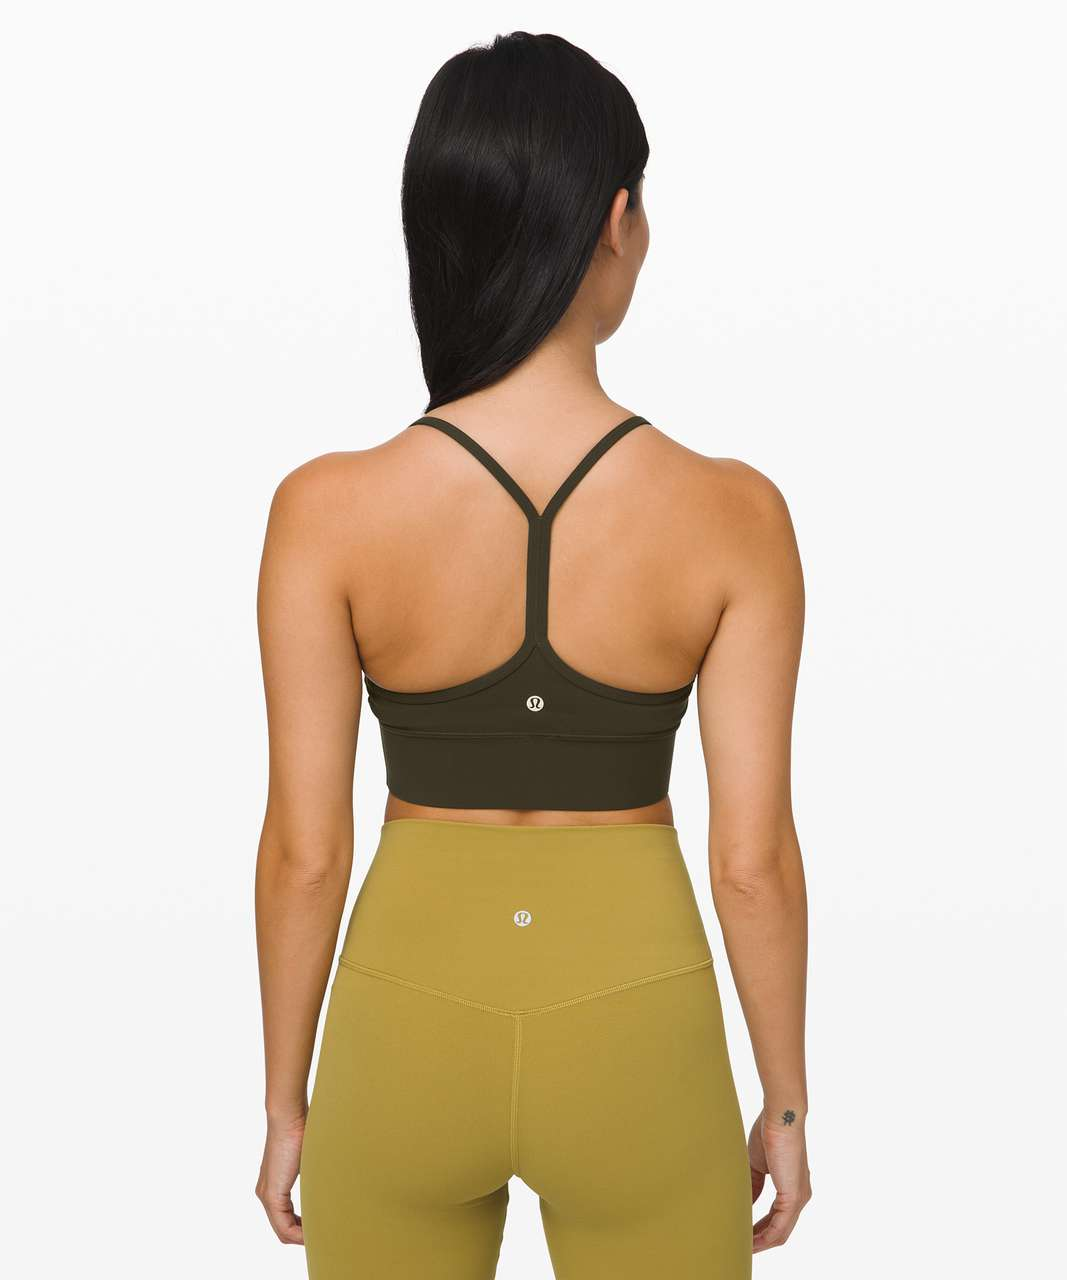 Lululemon Flow Y Bra *Nulu Long Line - Dark Olive